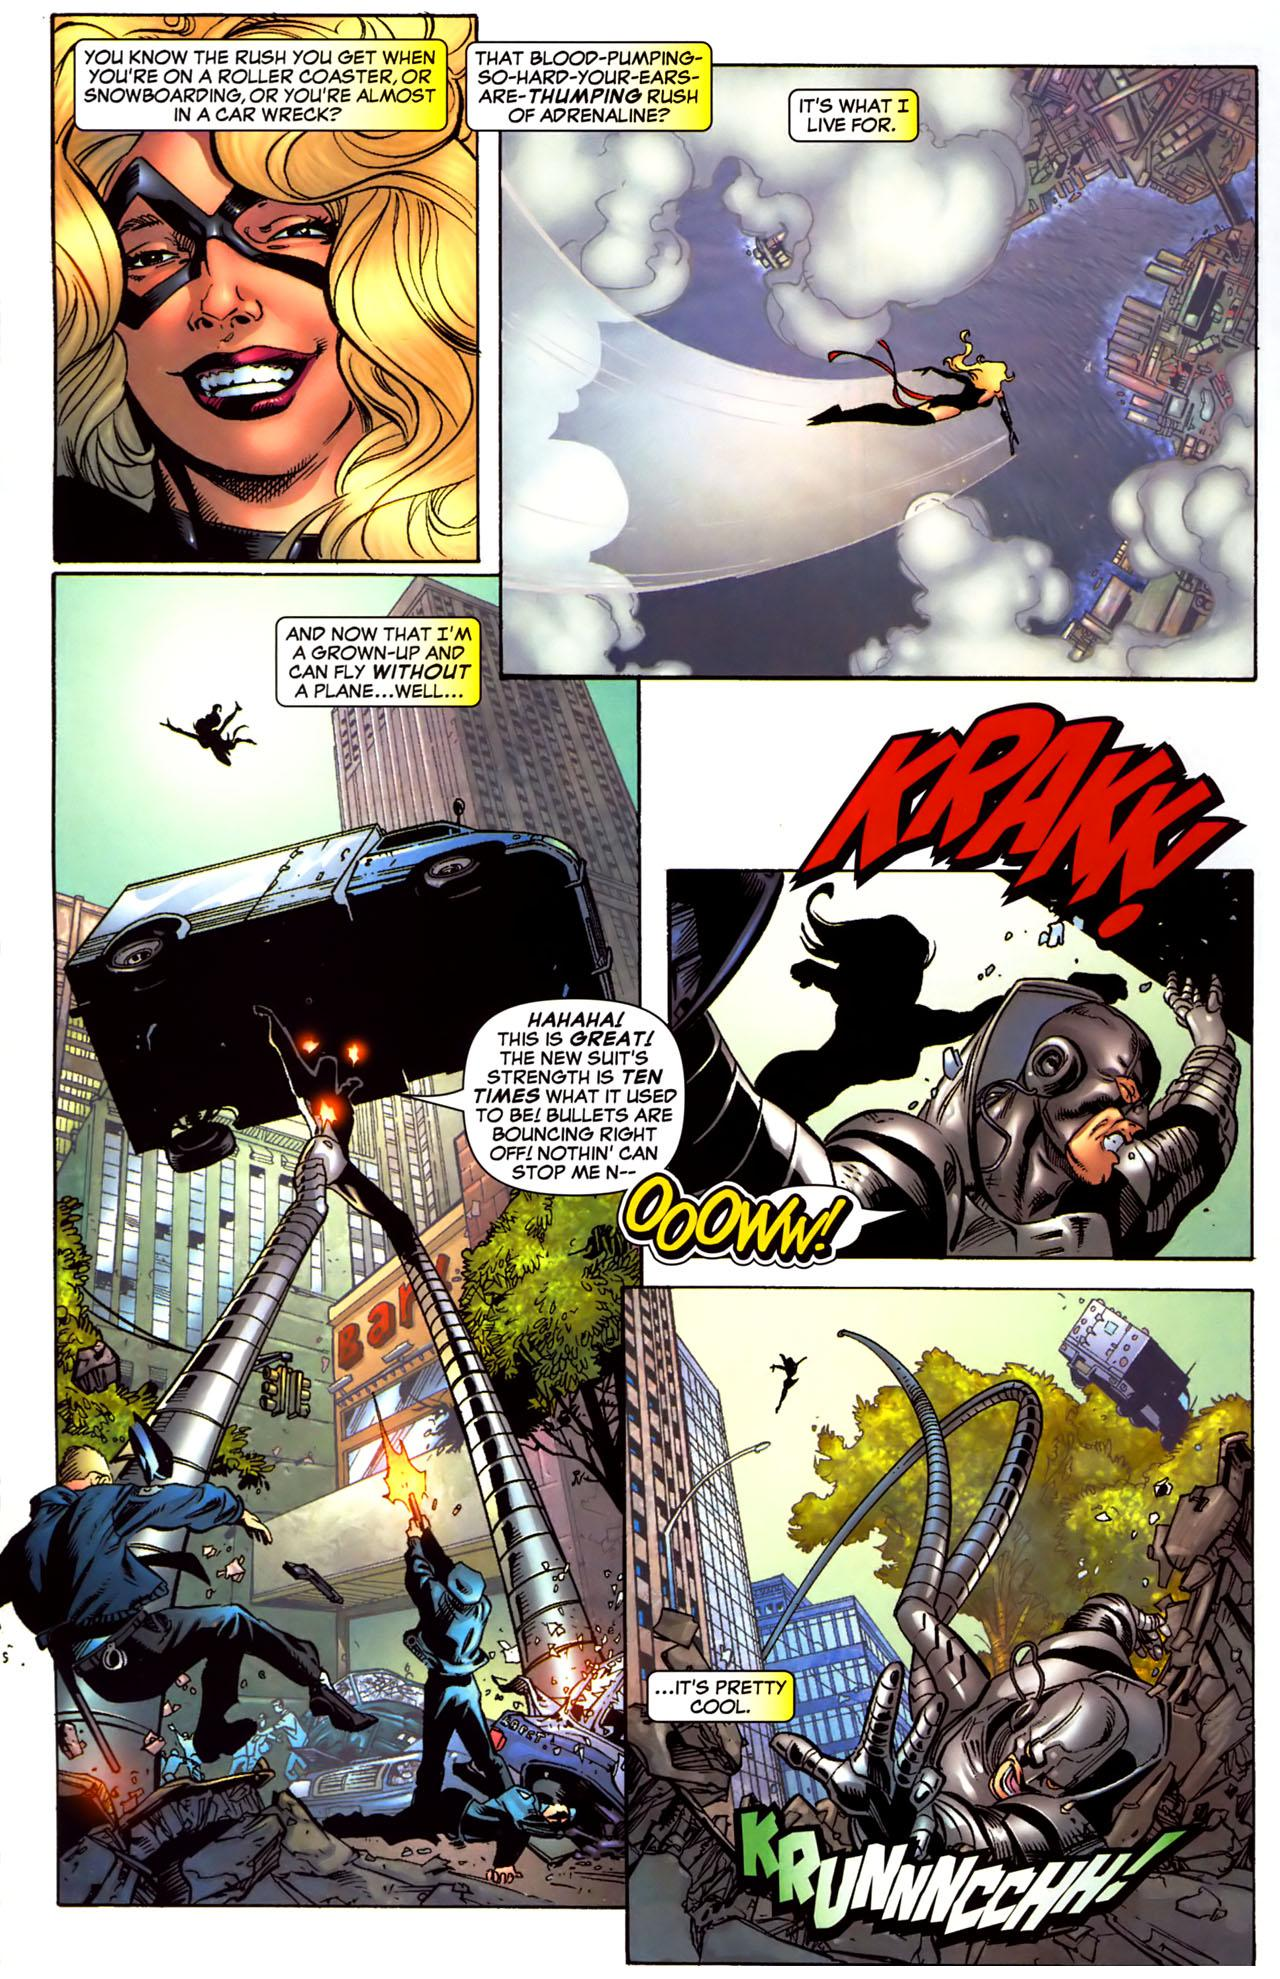 Ms. Marvel Best of the Best review